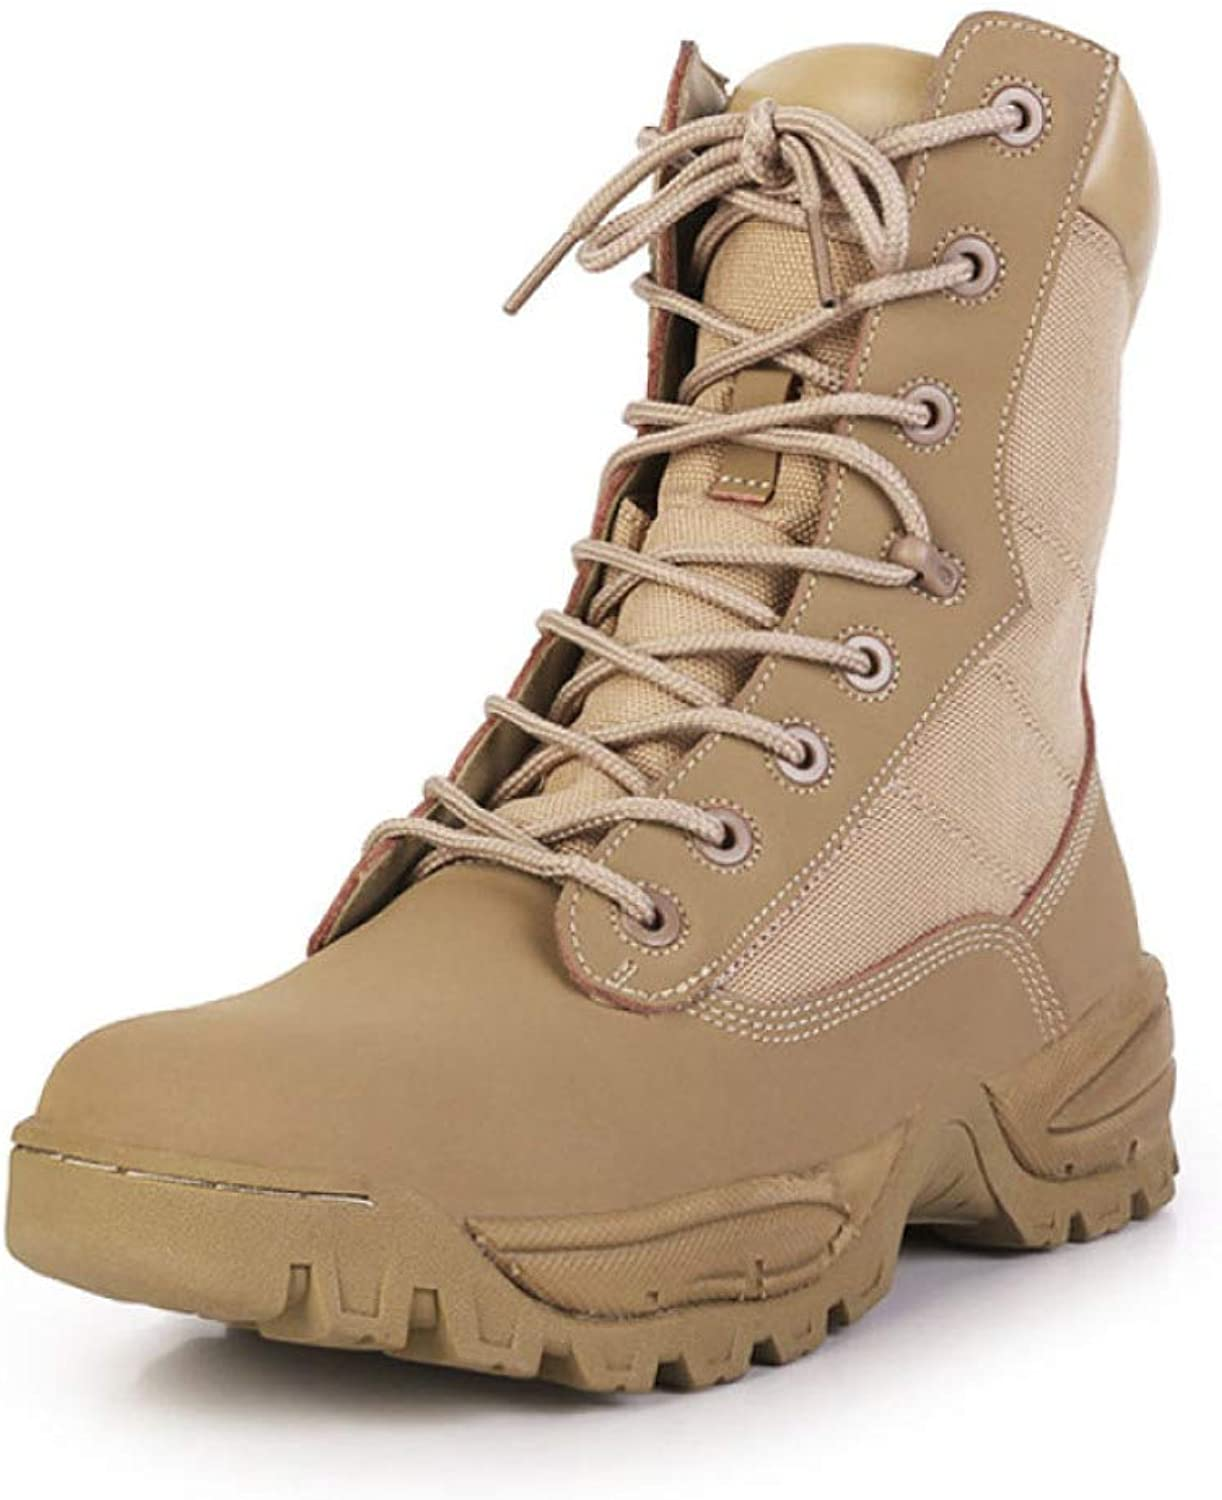 YC Desert Boots Ultralight Combat Boots Canvas Breathable High Tops Training Boots For Mens Leather Camping Hiking Special Boots